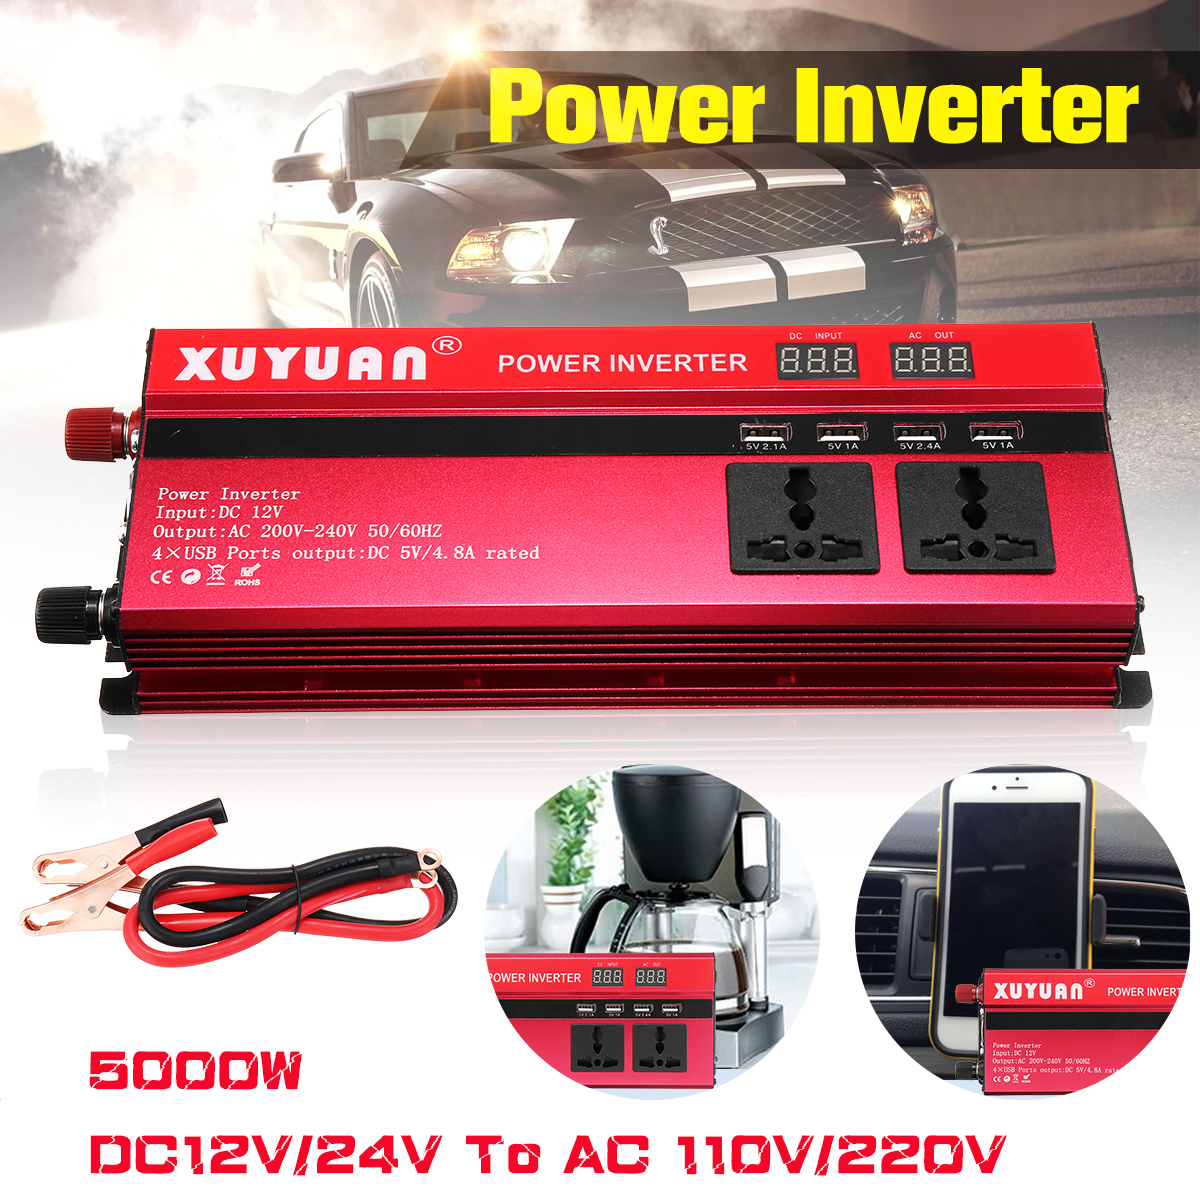 Inverter 12V 220V 5000W 4000W 3000W Peak Power Voltage Transformer Converter 12V To 220V DC-AC Solar Sine Wave Inverter original iscg03 mrg g2 32t 36t speed hollow cnc aluminum alloy mtb bicycle chain guide guidance position protector